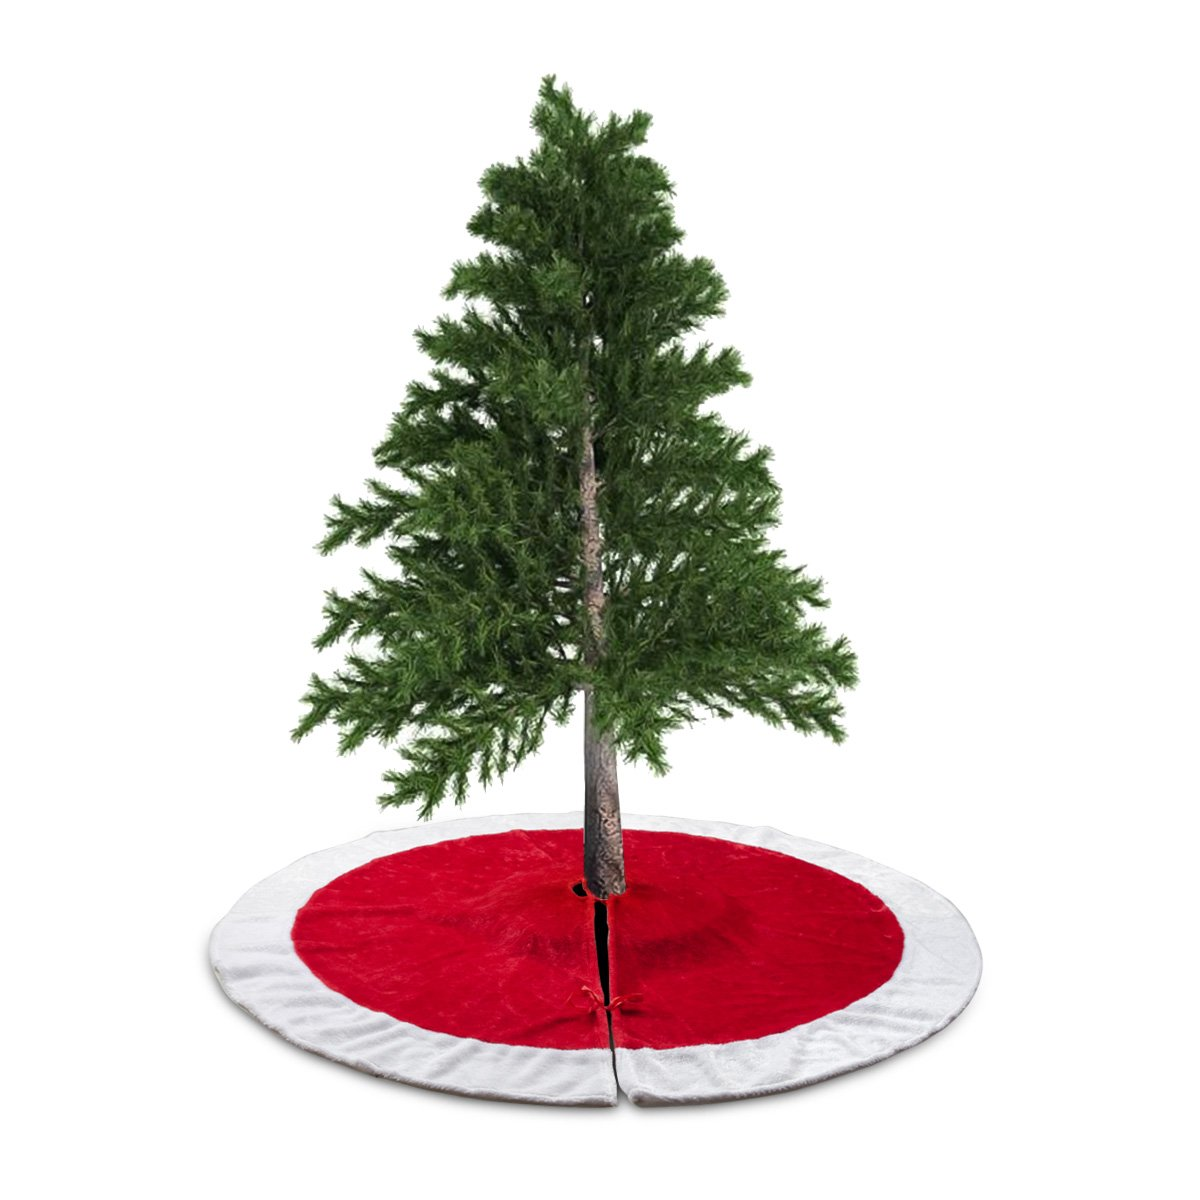 D-FantiX 48 Inch Traditional Velvet Christmas Tree Skirt Red and White Holiday Christmas Decorations Large